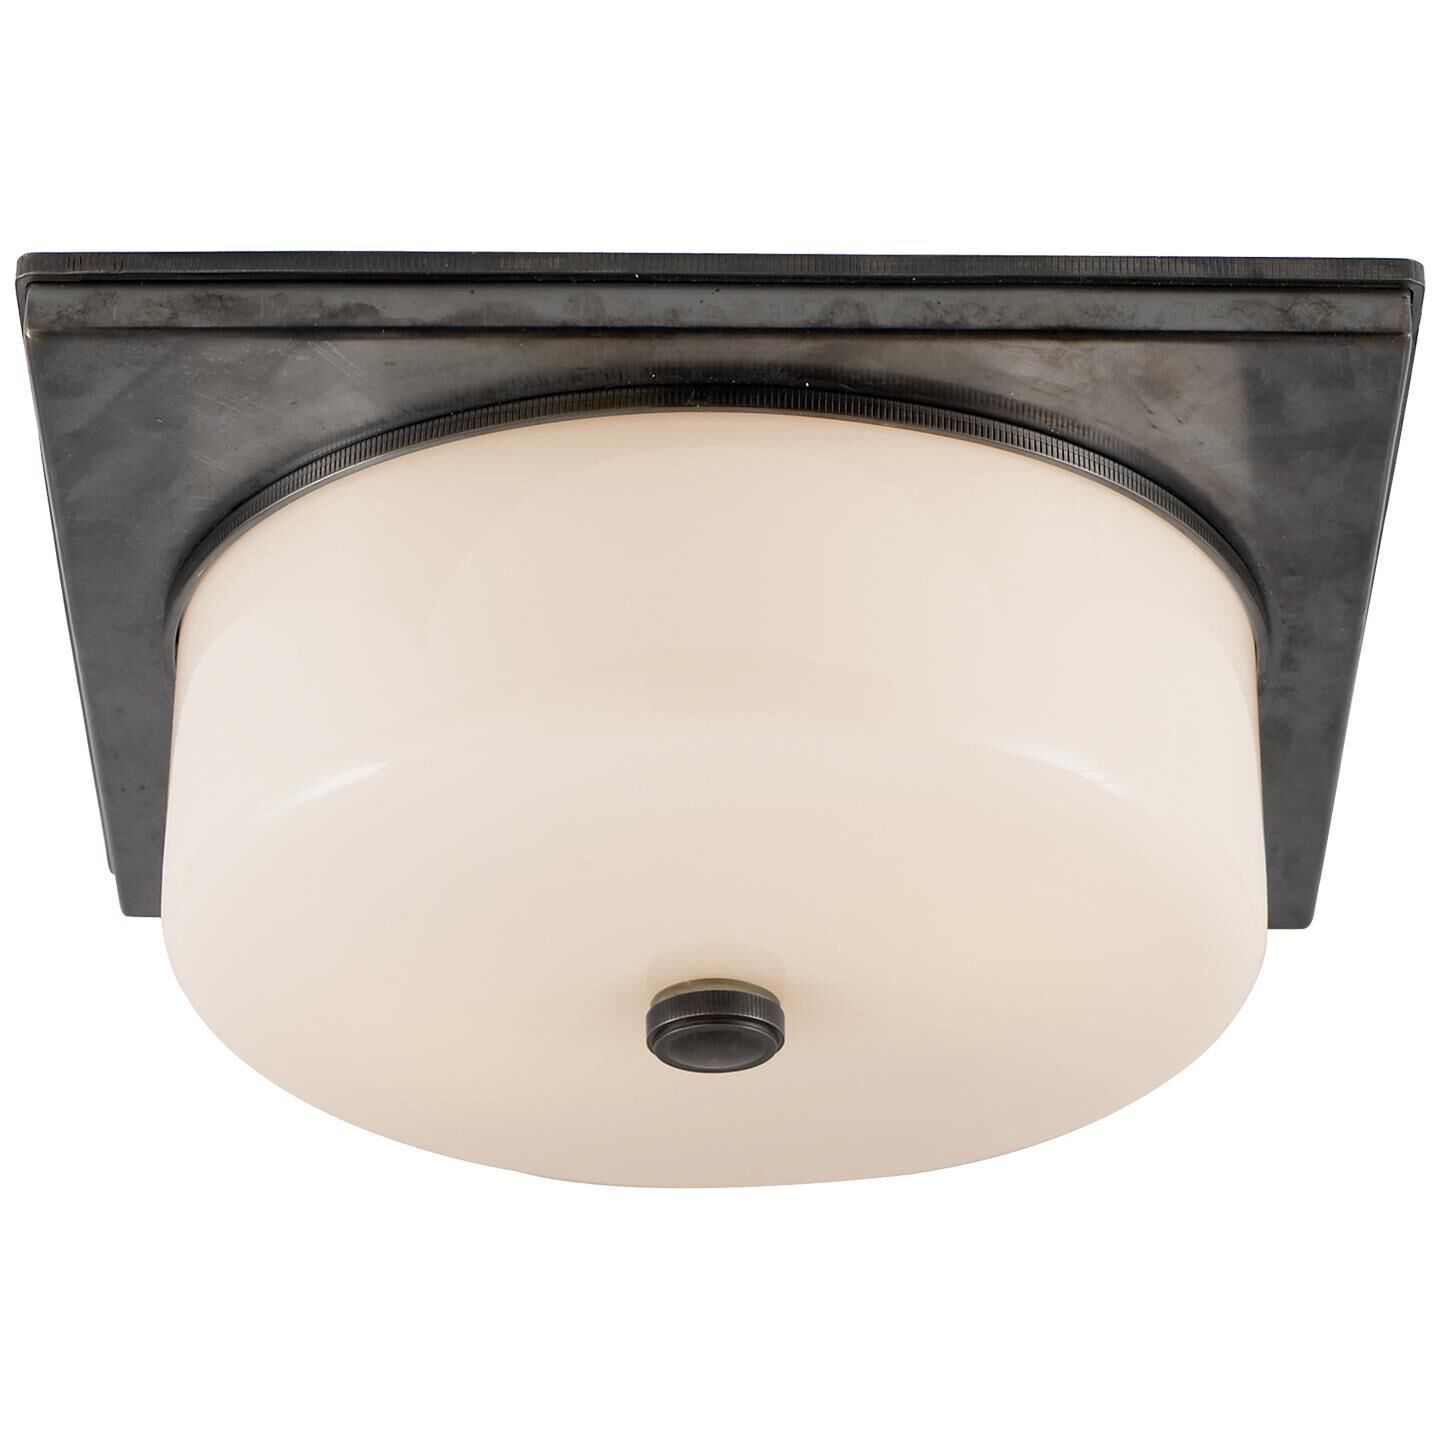 Thomas O'Brien Newhouse Block 12 Inch 2 Light Flush Mount by Visual Comfort and Co. Newhouse Block Flush Mount by Visual Comfort and Co. - TOB 4216BZ-WG